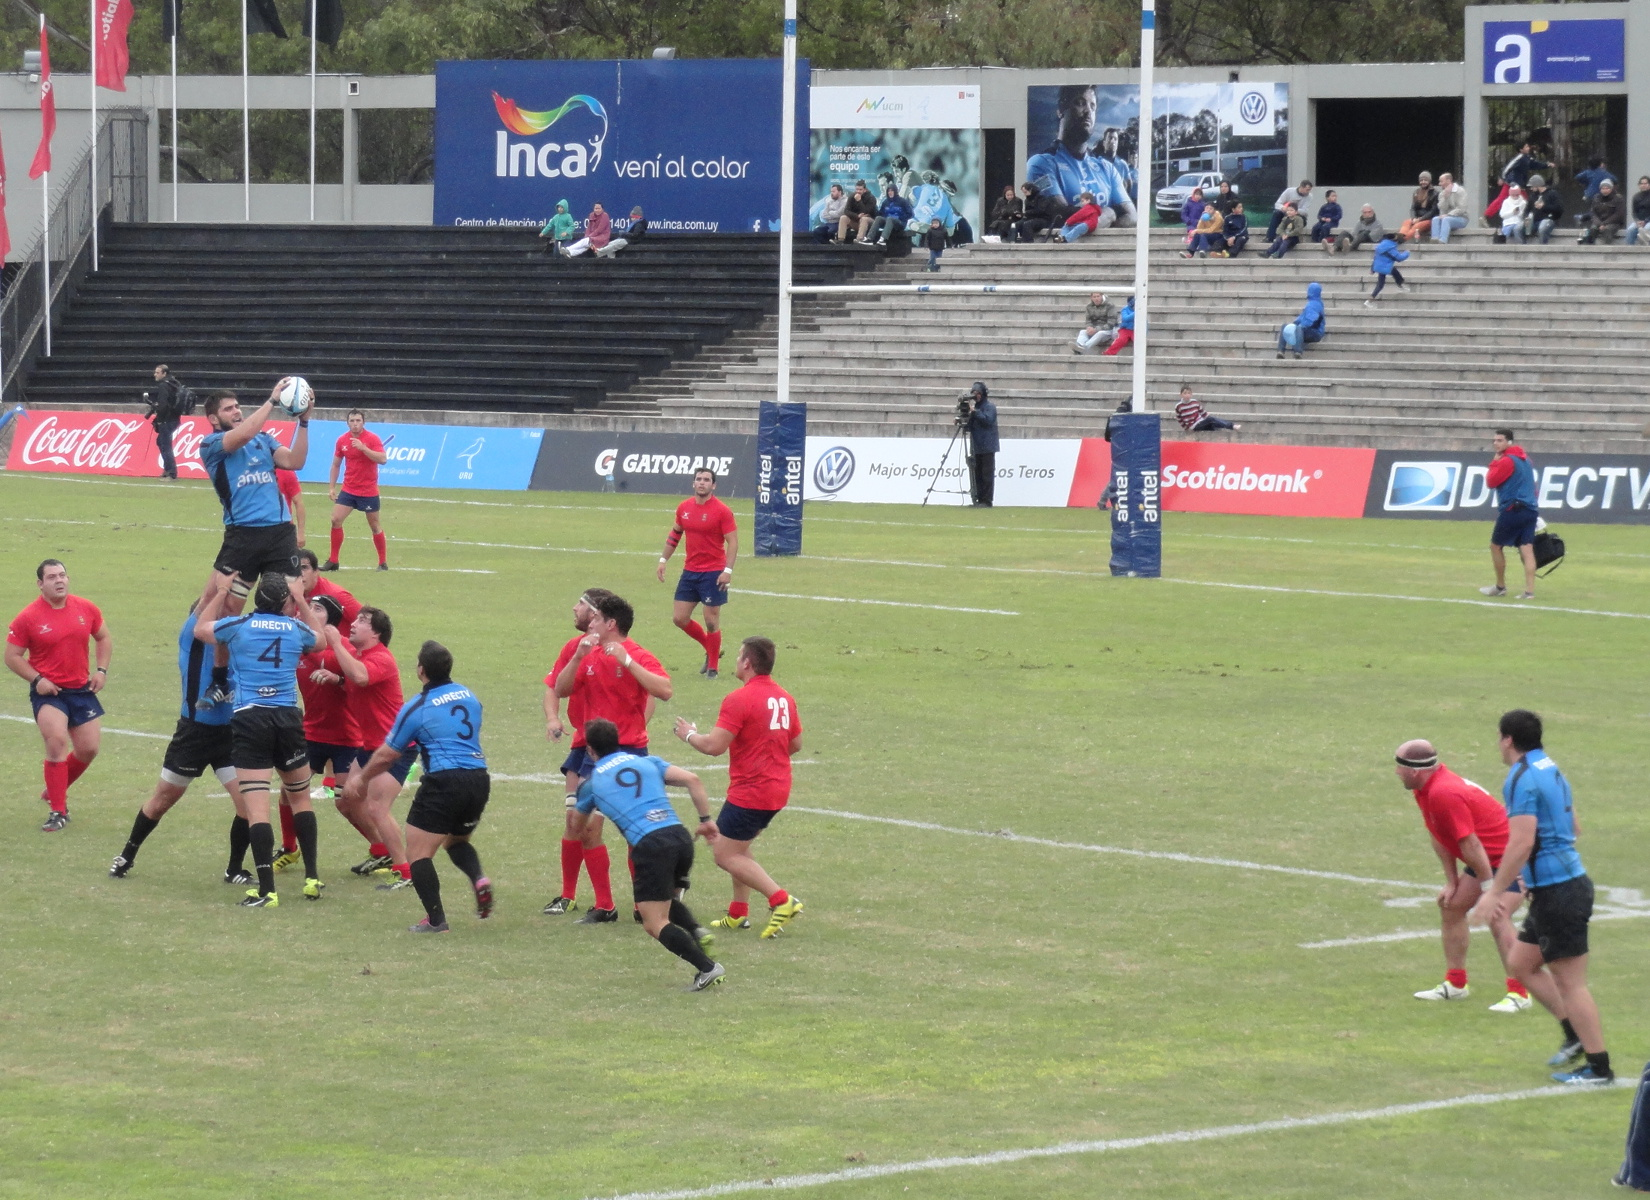 File2016 South American Rugby Championship Uruguay Vs Chile 09 Jpg